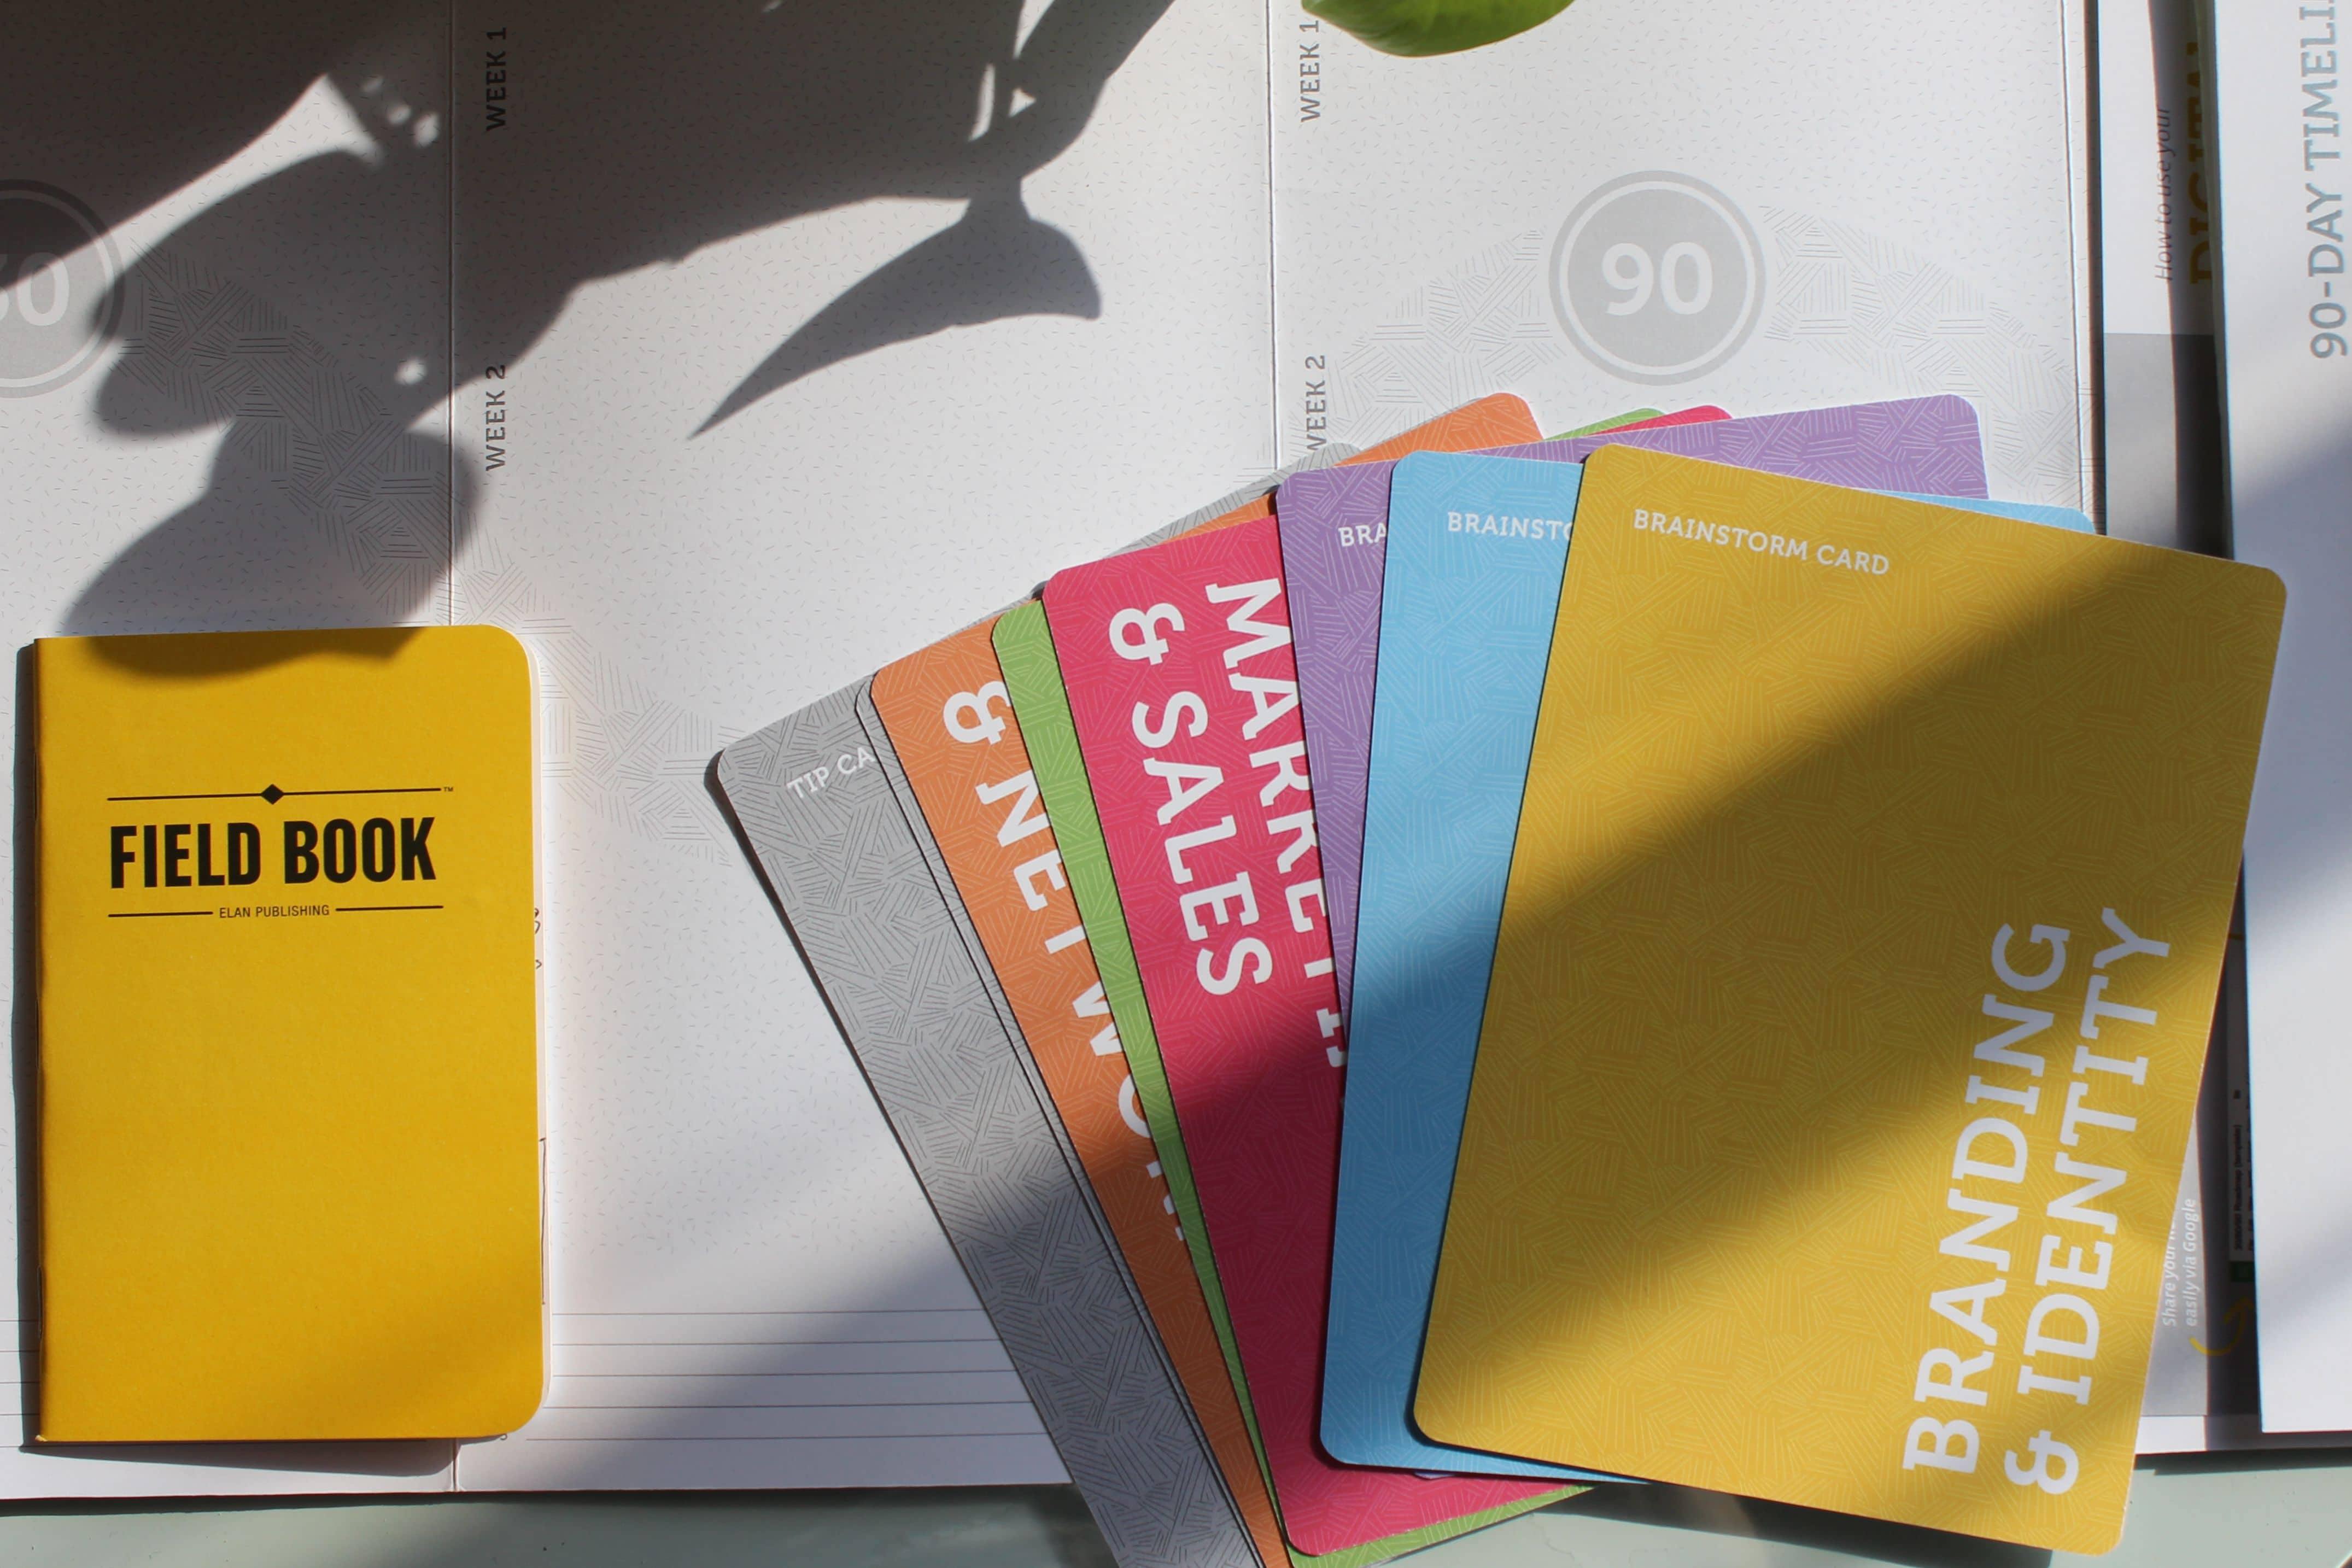 Product shot of Co.Starters materials including the field book and brainstorming cards.